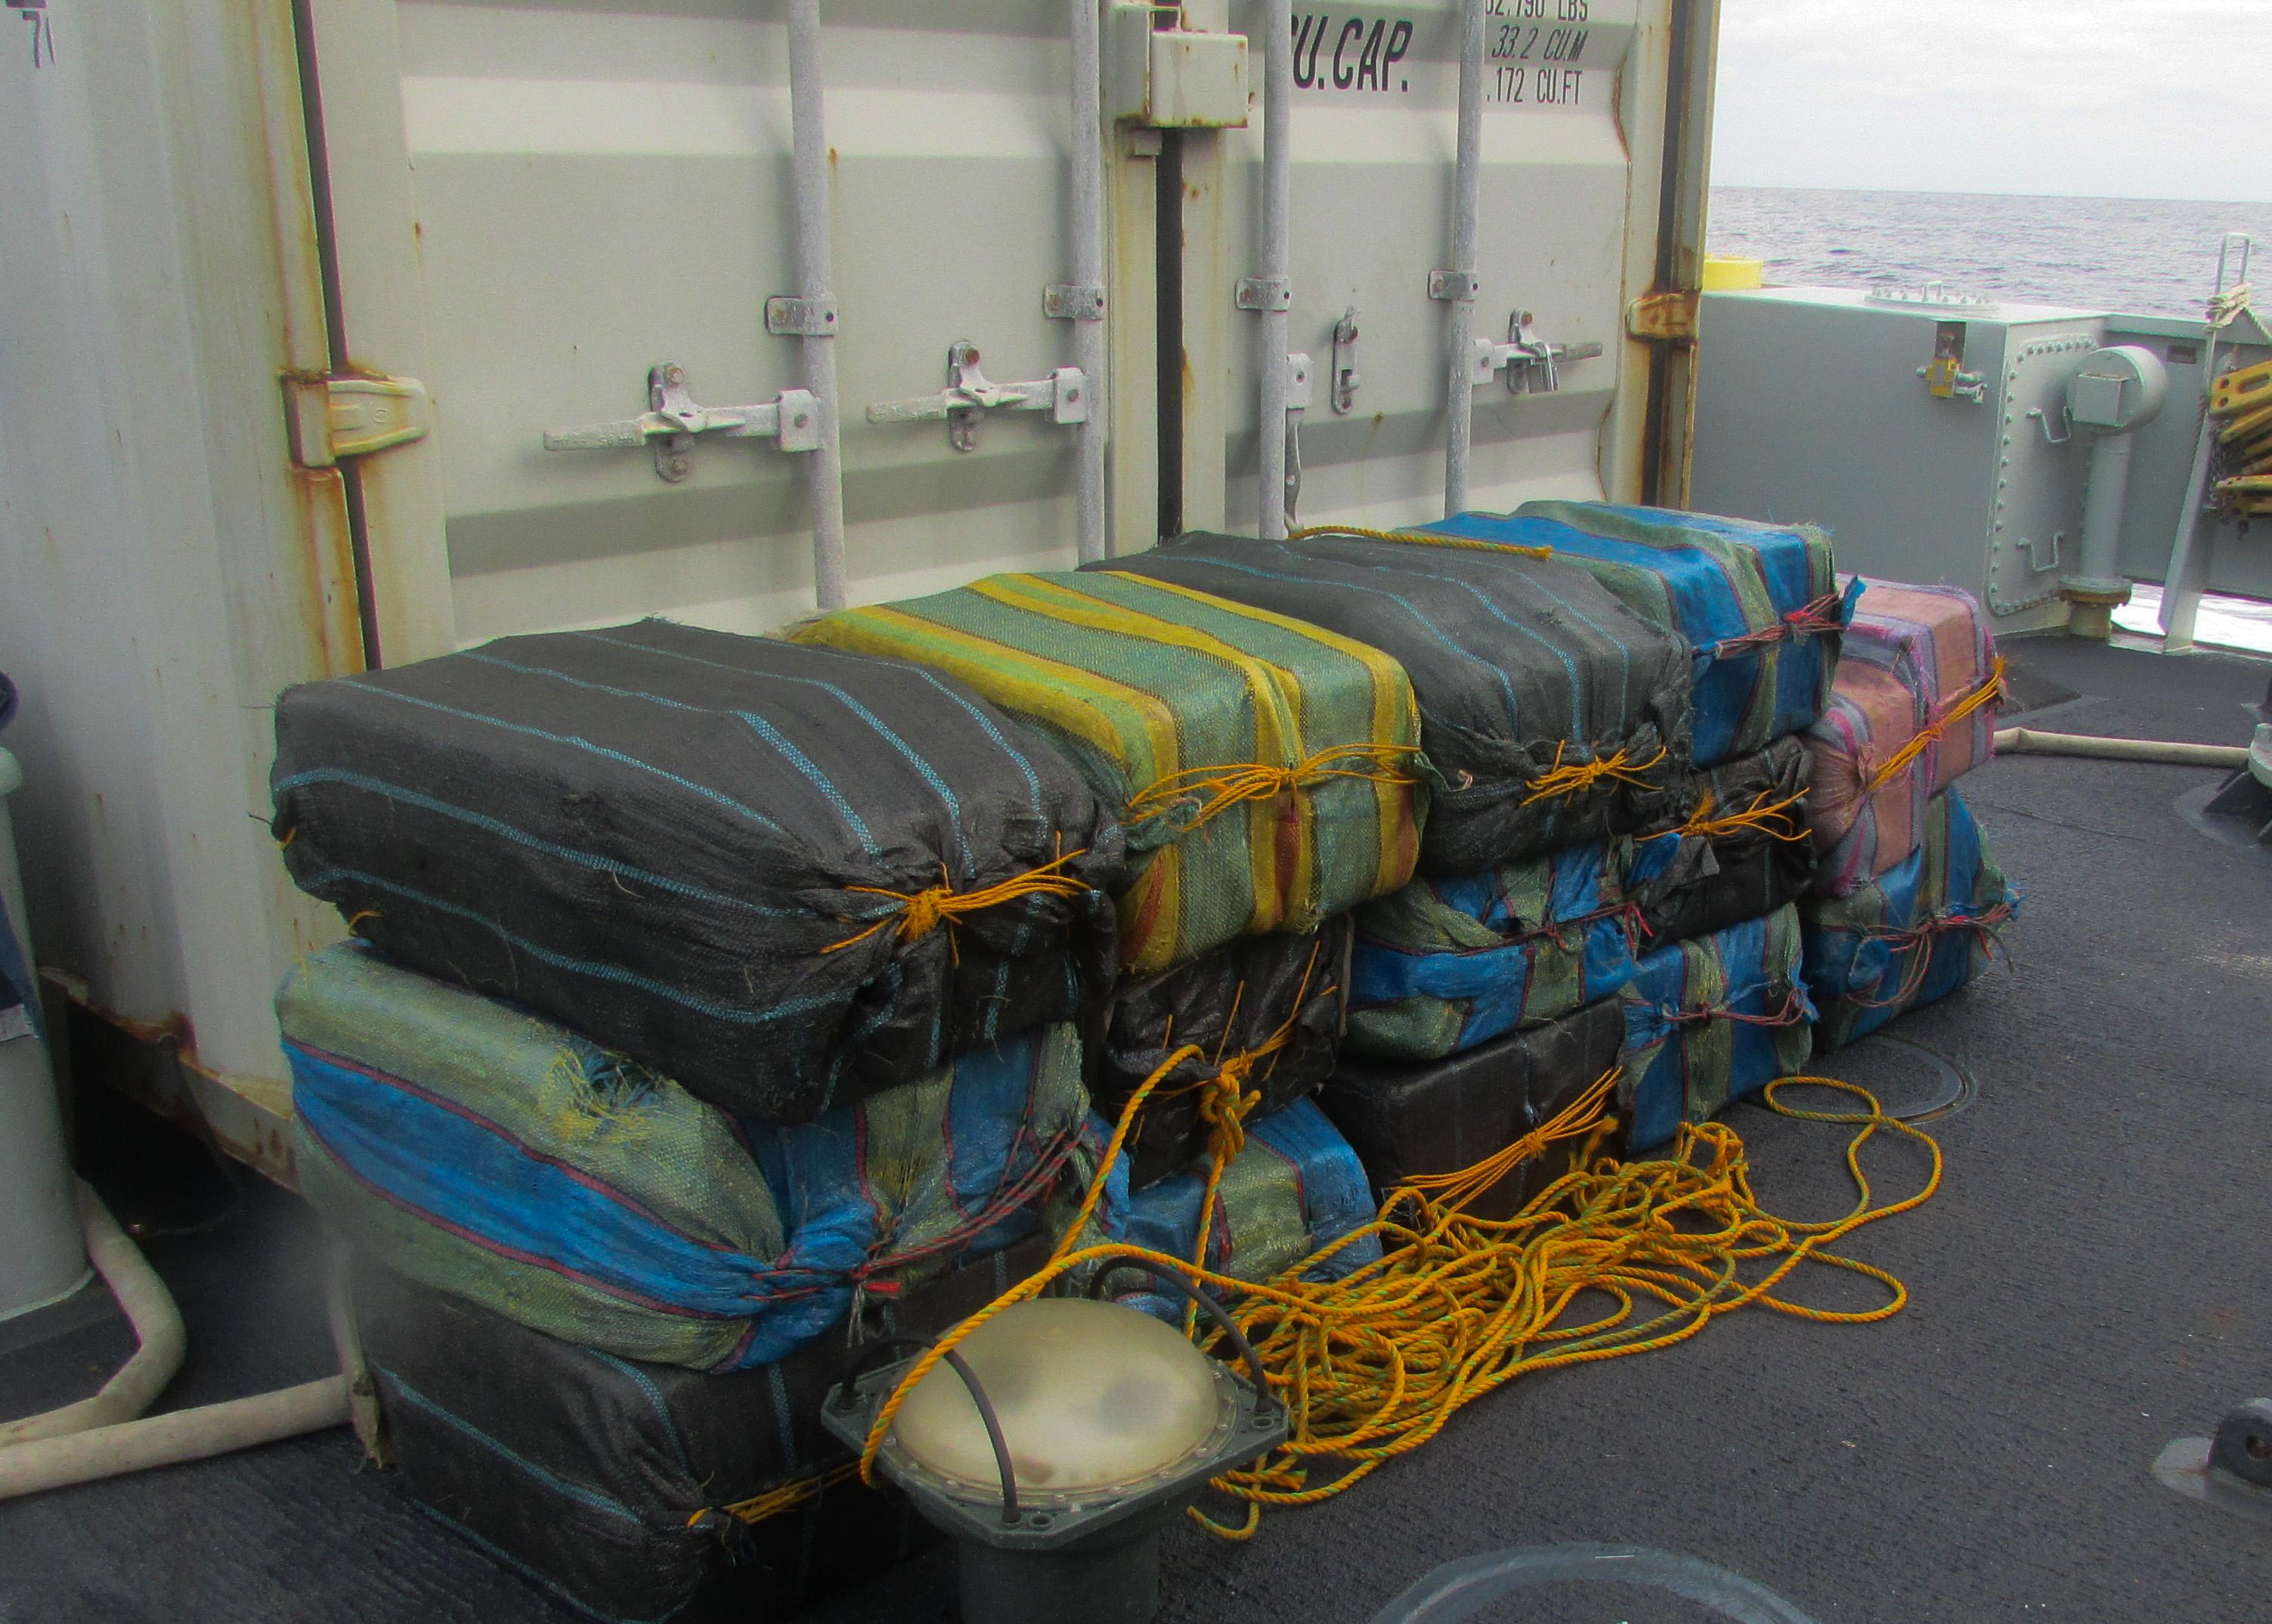 14 bales of cocaine weighing an estimated 700 kg rest on the sweep deck of HMCS BRANDON after being jettisoned by a suspected smuggling vessel, a small fishing boat known as a panga, off the Pacific coast of Central America during Operation CARIBBE on 5 November, 2016. (Image By: U.S. Coast Guard)